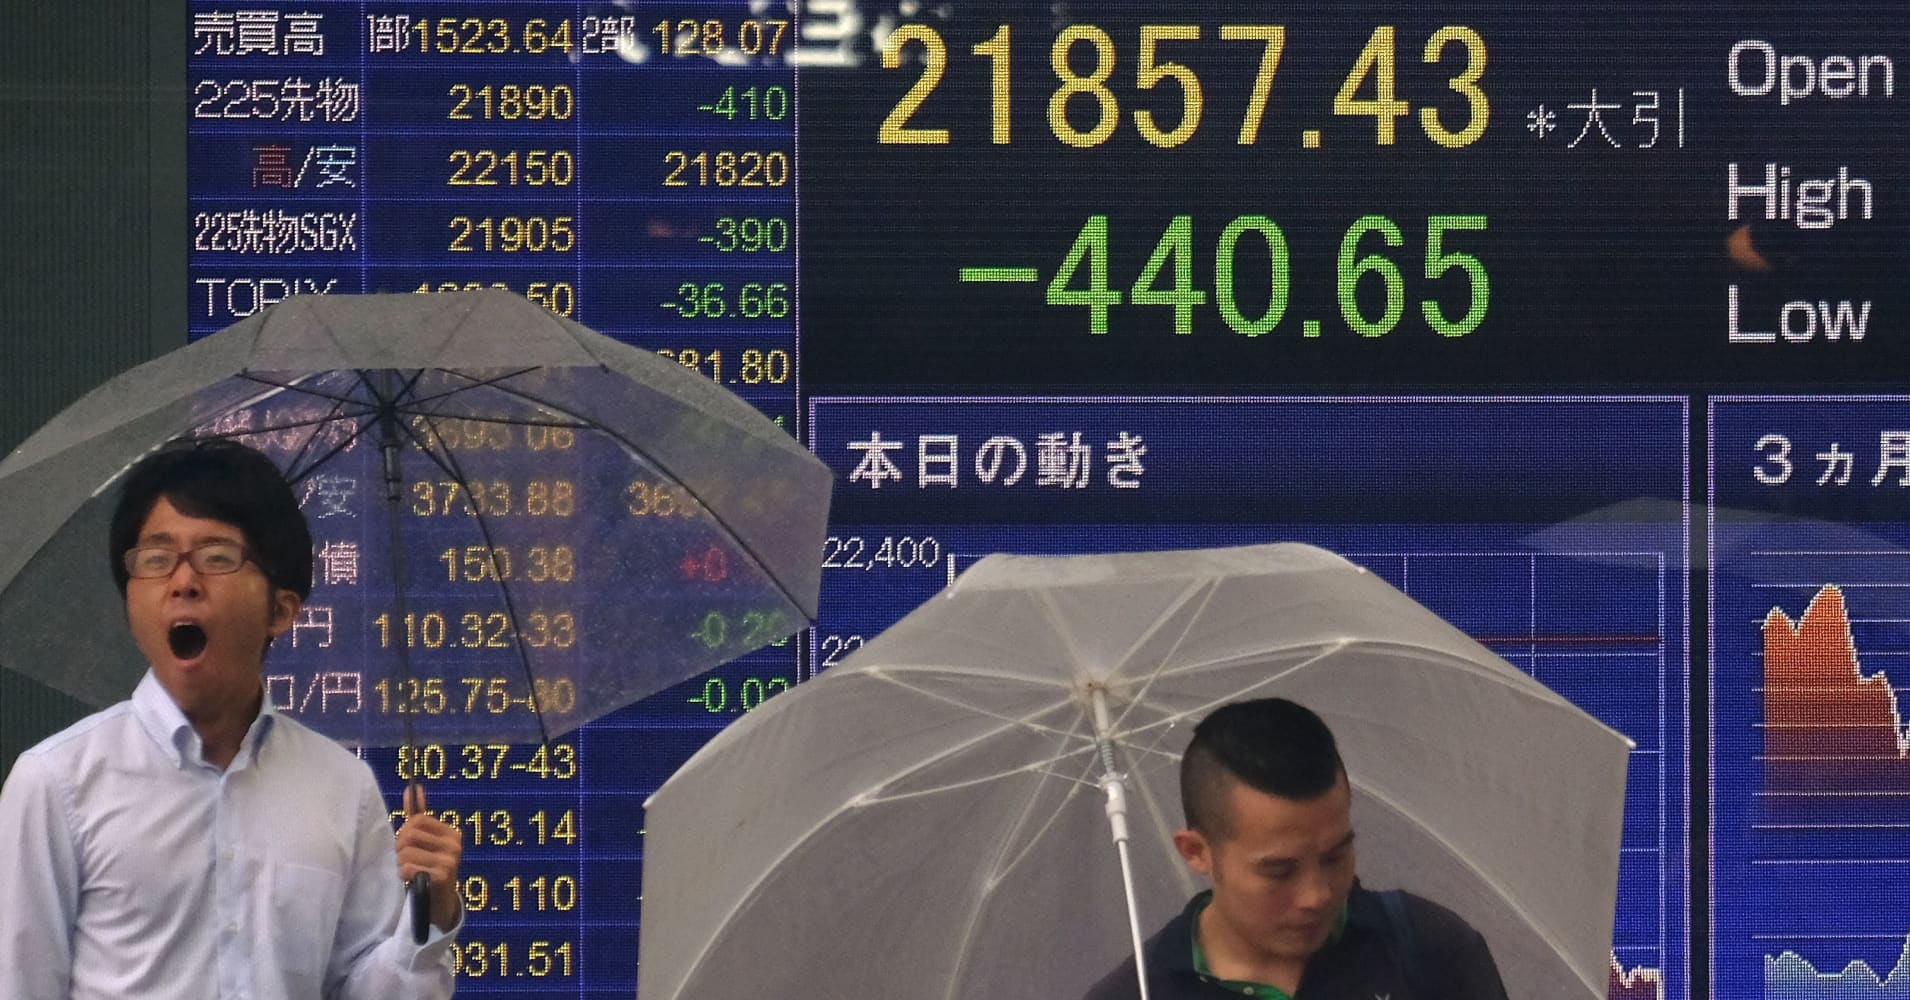 Asian shares decline, with tech trading lower after Wall Street losses